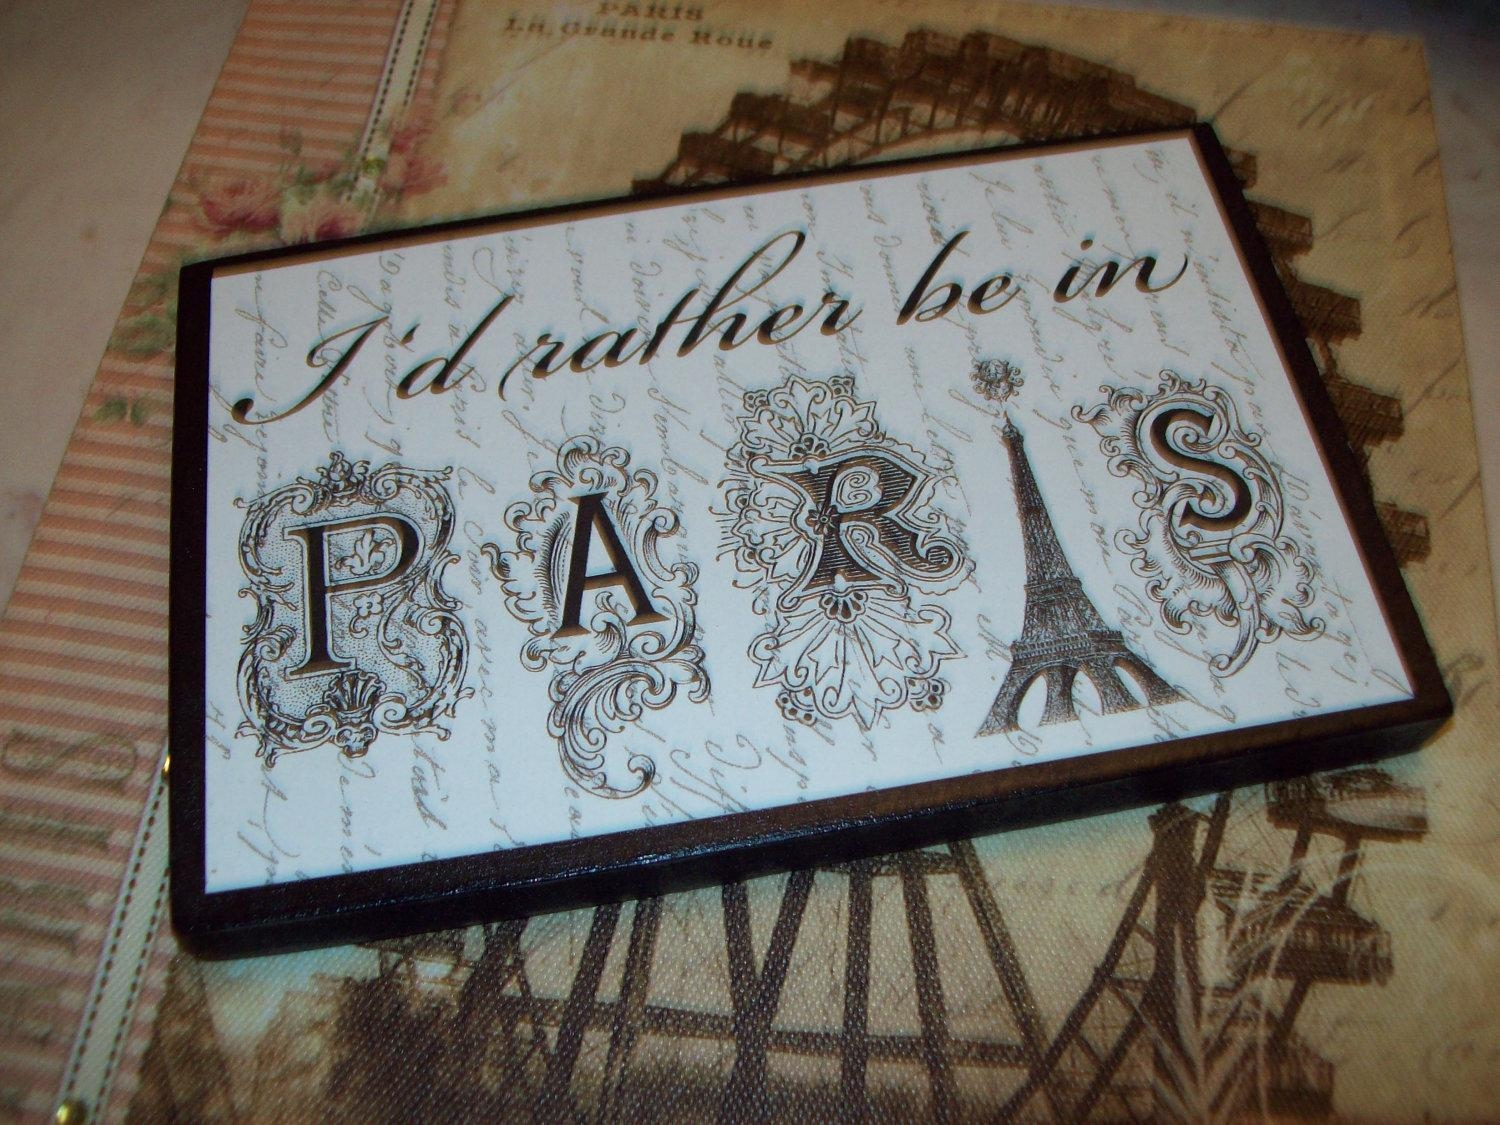 I'd Rather Be In Paris Shelf Sitter Signpars Decorparis Regarding Paris Themed Wall Art (View 16 of 20)